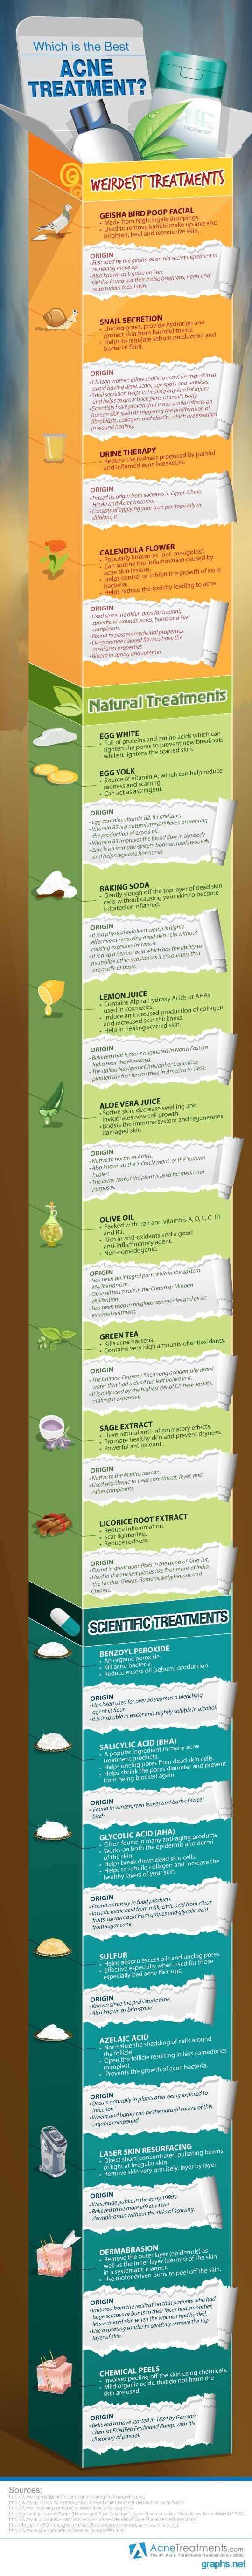 best acne treatment facts